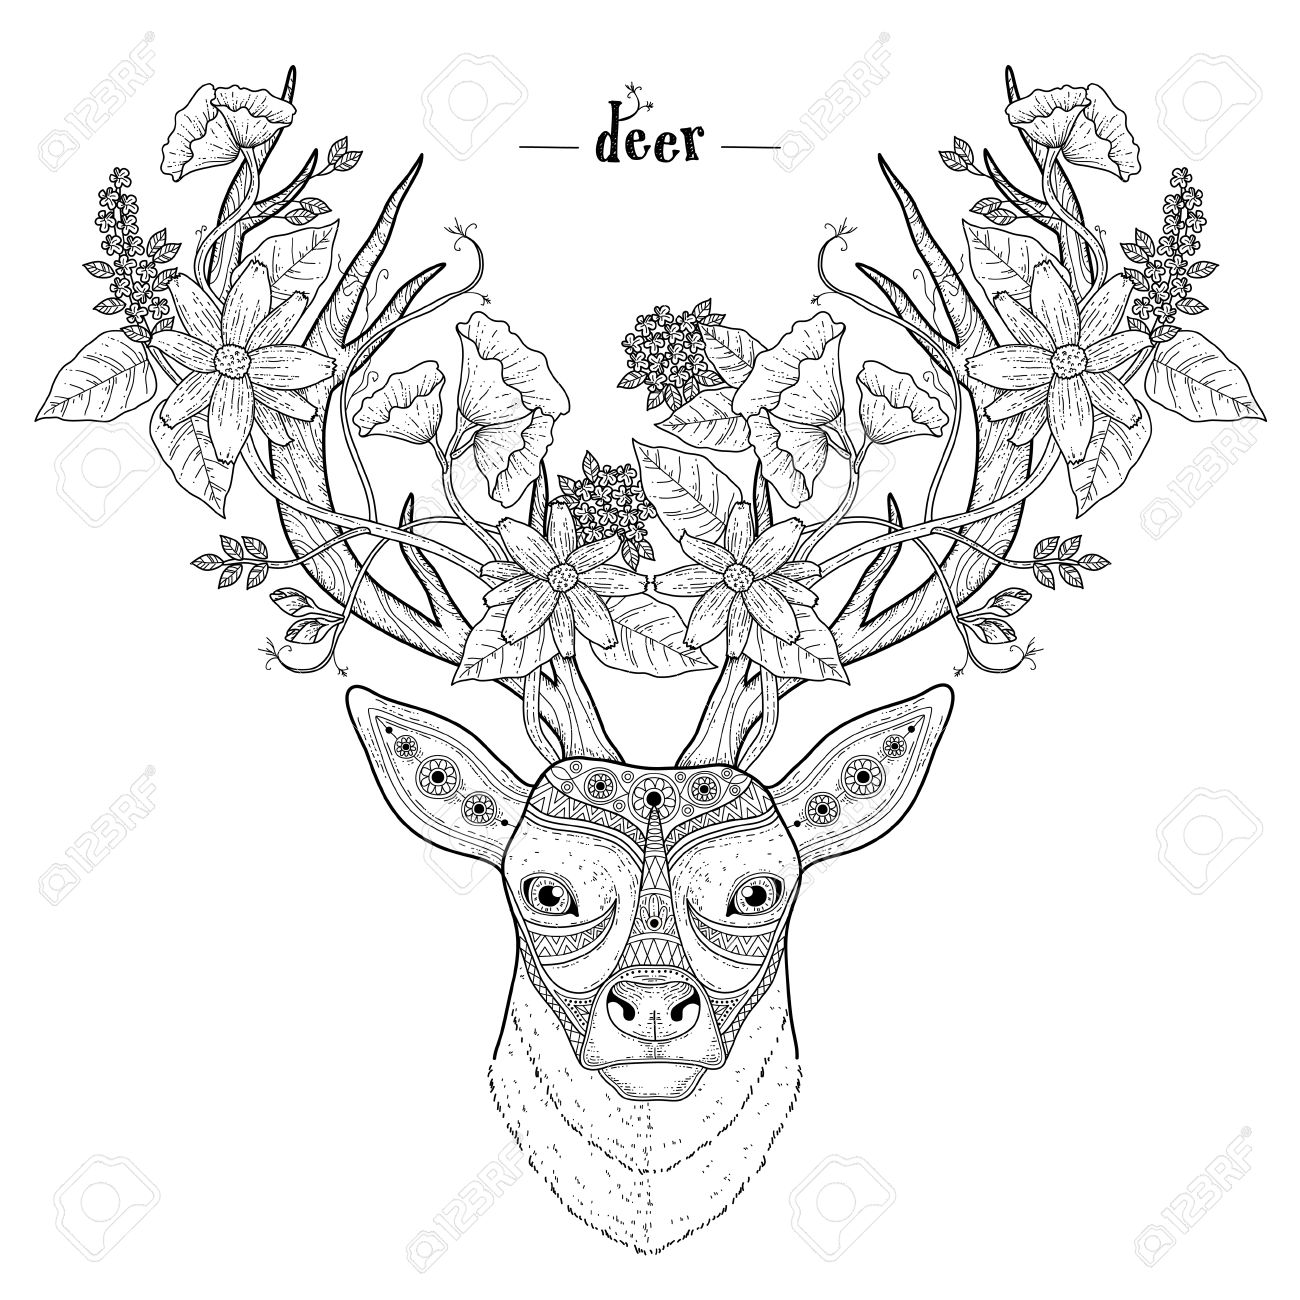 Elegant Deer Head Coloring Page In Exquisite Style Stock Vector